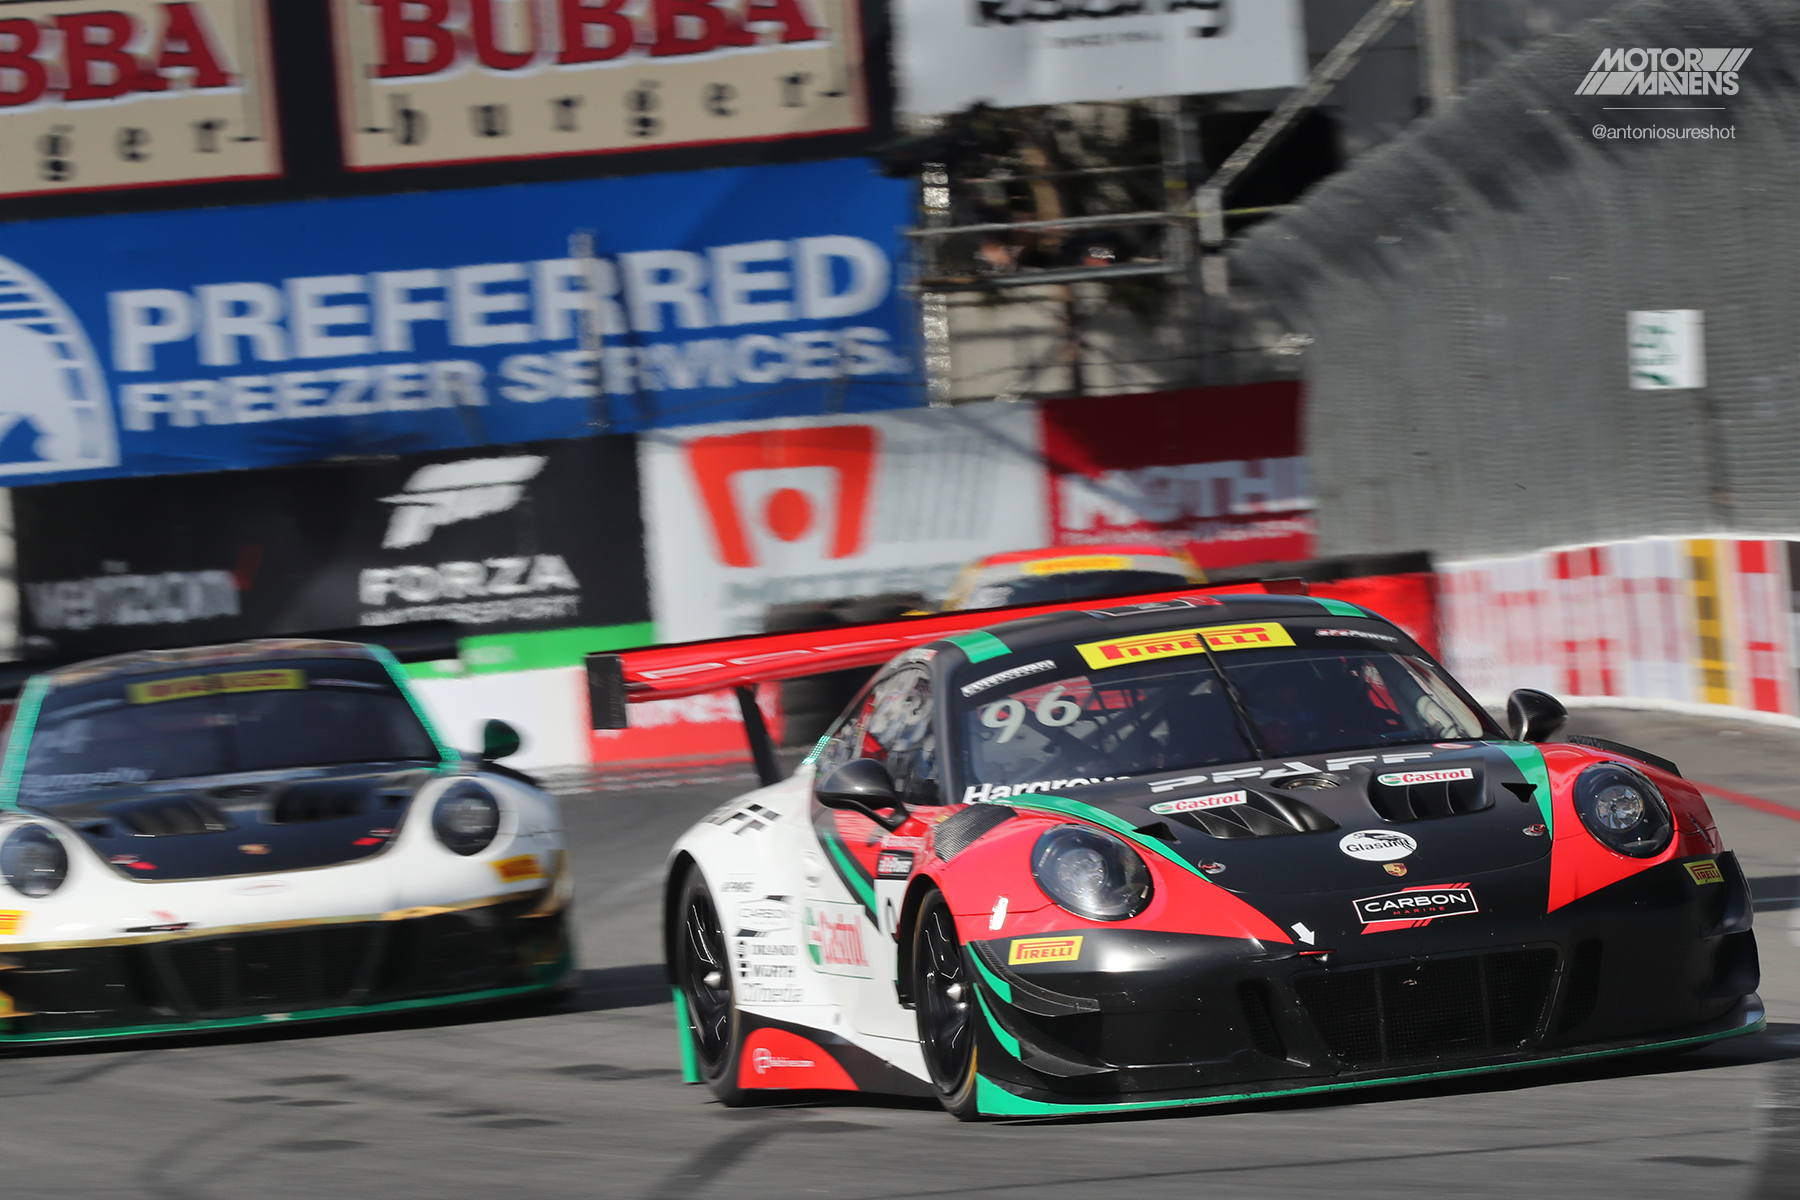 Porsche 911, 991, 911 GT3R, 911 GT3, Pirelli World Challenge, Long Beach Grand Prix, Pirelli